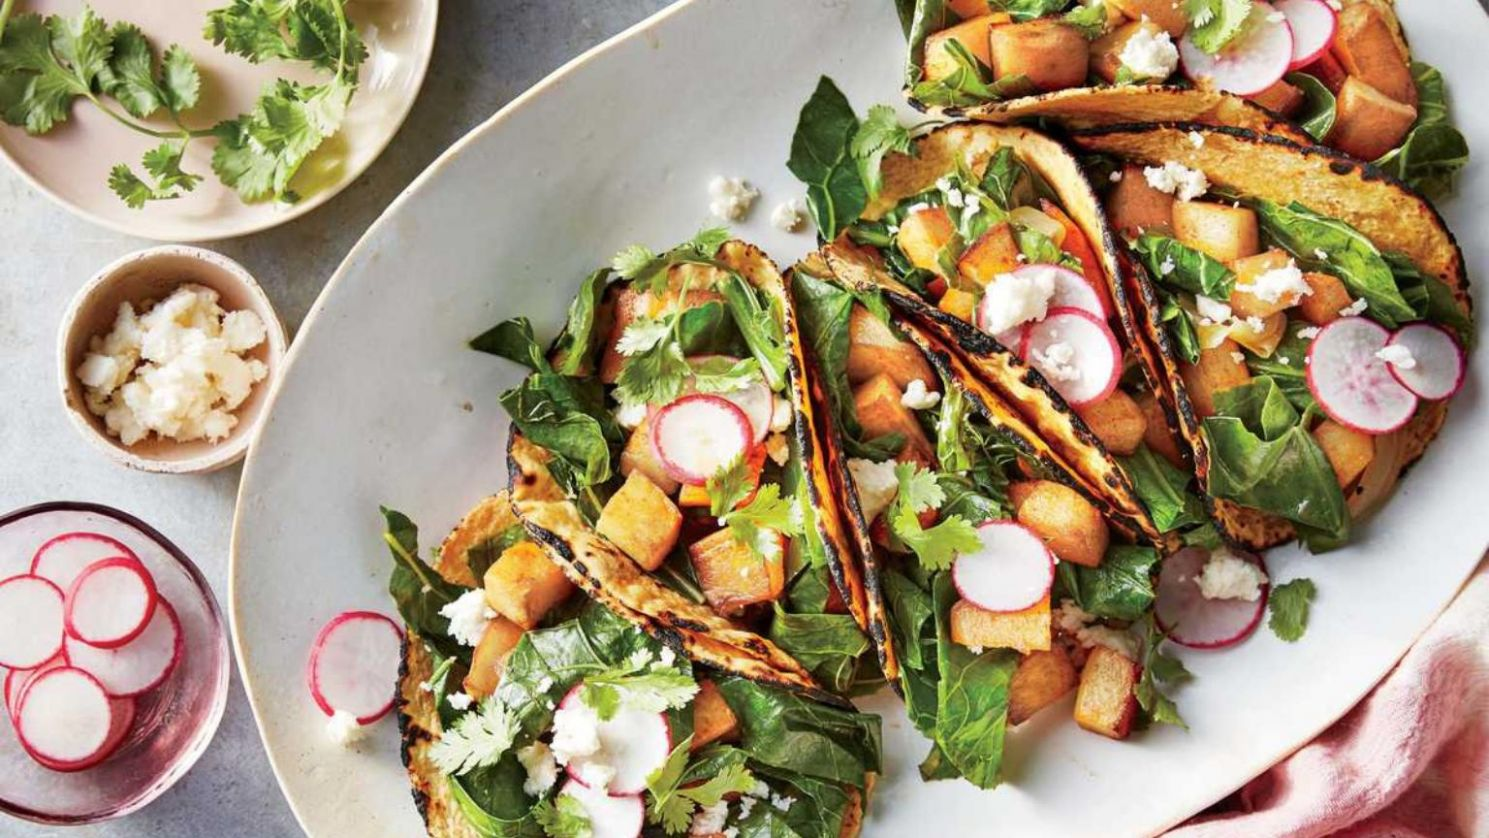 10 Easy Vegetarian Recipes for Busy Weeknights